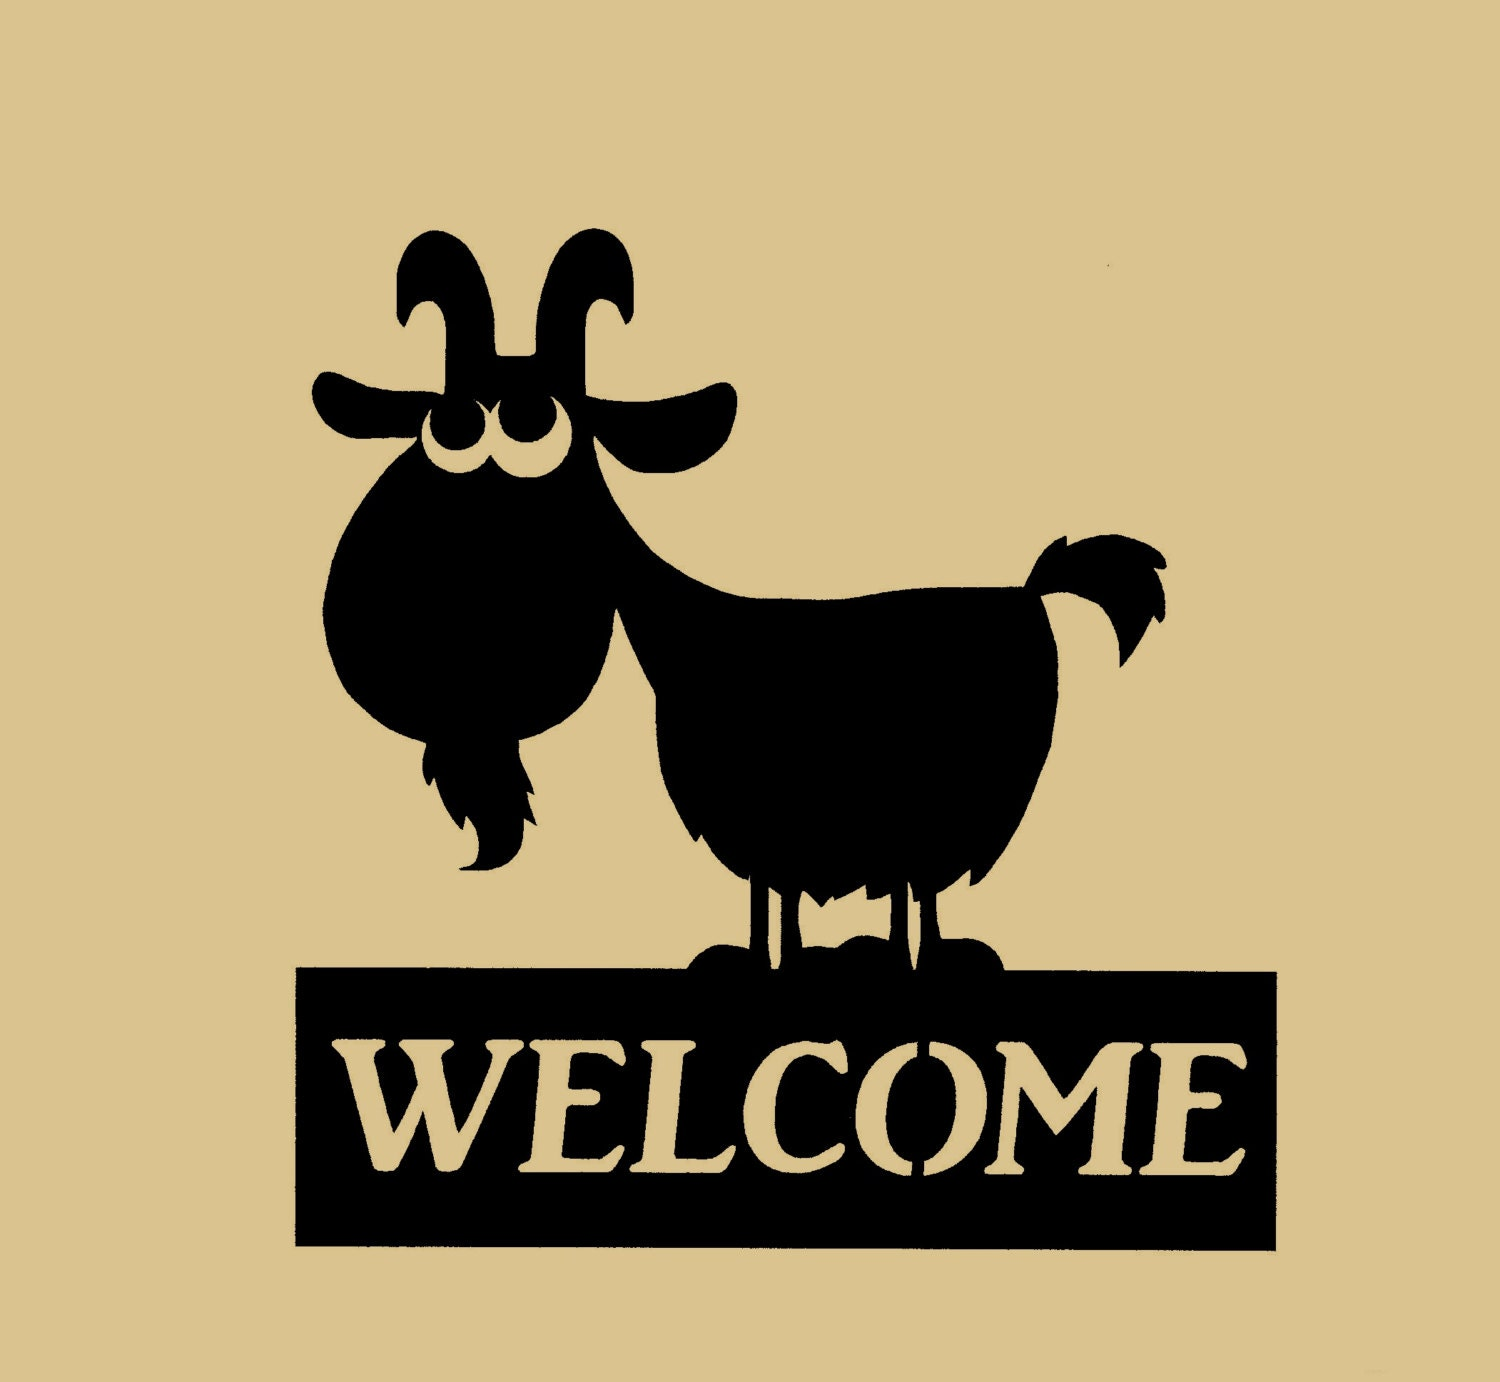 Goat Welcome sign silhouette farmyard Metal Art